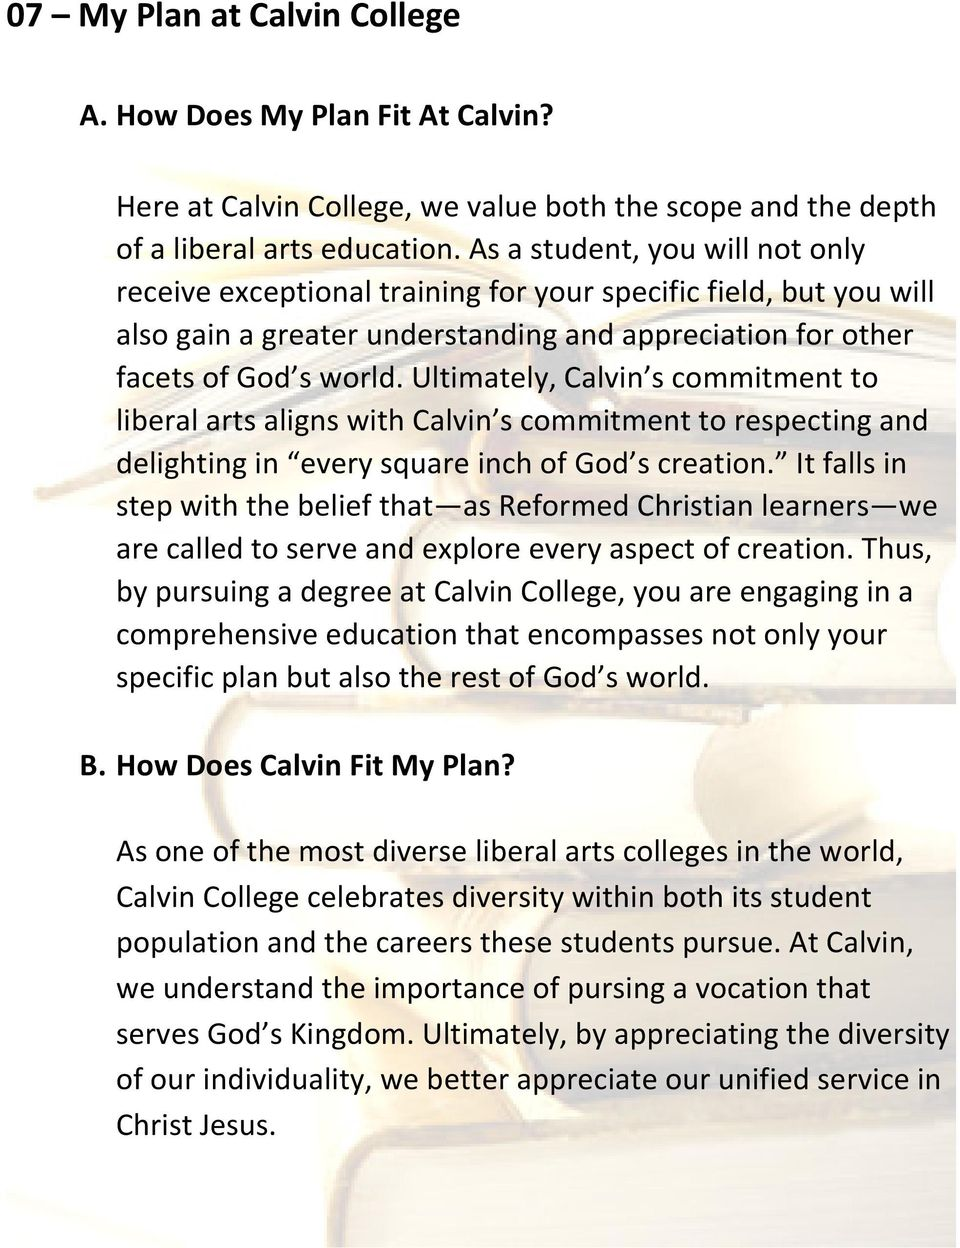 Ultimately, Calvin s commitment to liberal arts aligns with Calvin s commitment to respecting and delighting in every square inch of God s creation.